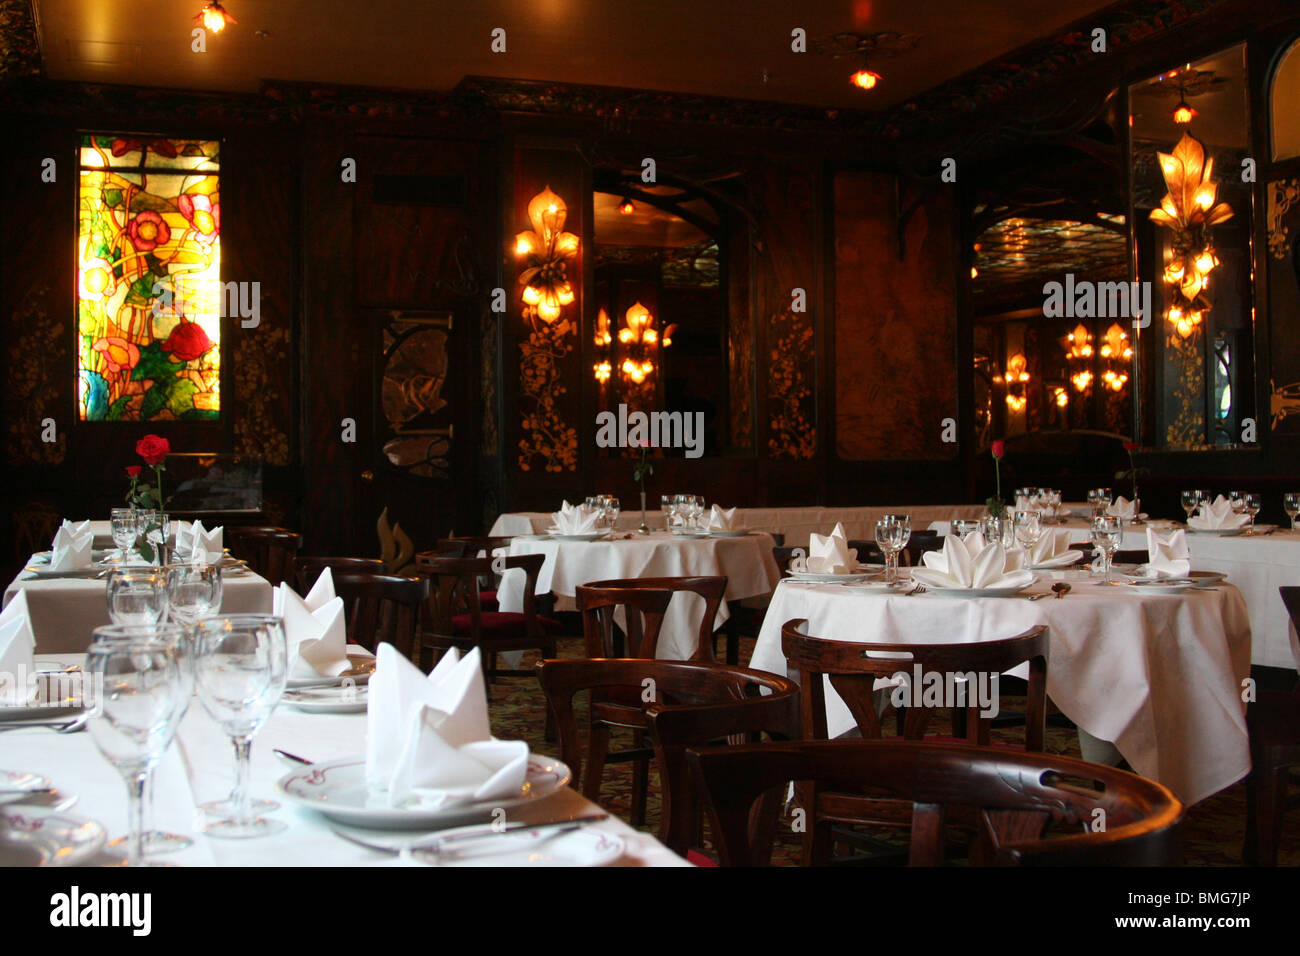 Unoccupied tables in Maxim Restaurant, Beijing, China - Stock Image